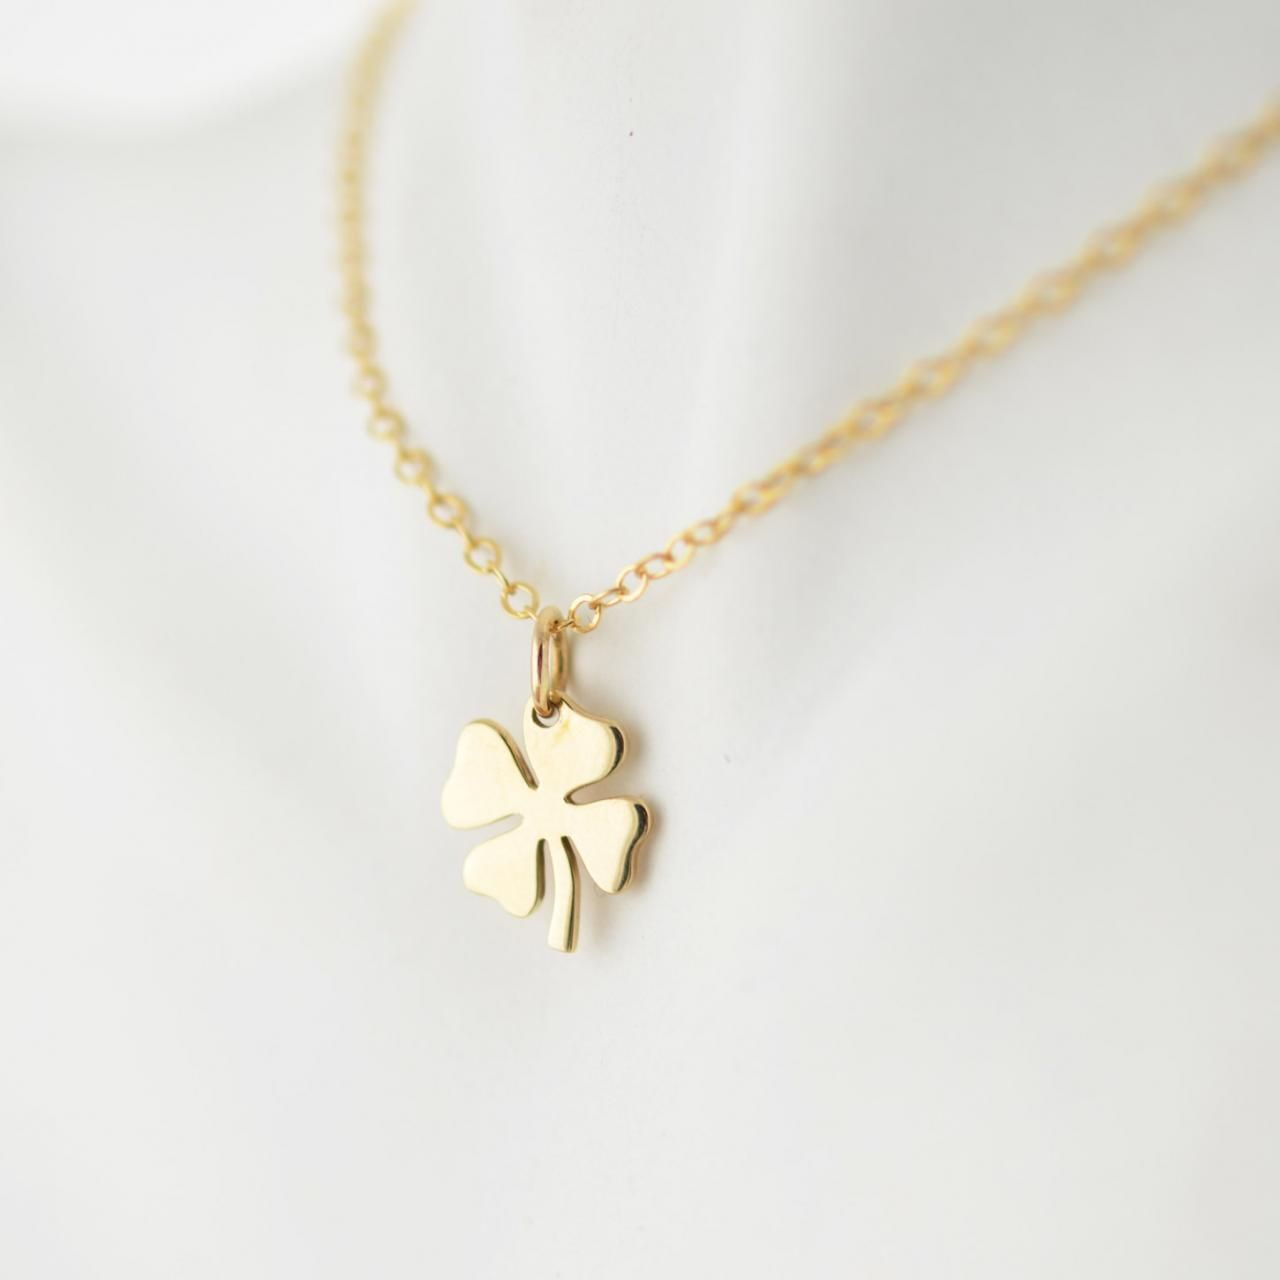 Womens Good Luck Charm Necklace 14k Gold Necklace Four Leaf Clover Charm Four Leaf Clover Necklace Clover Jewelry Gold Necklace